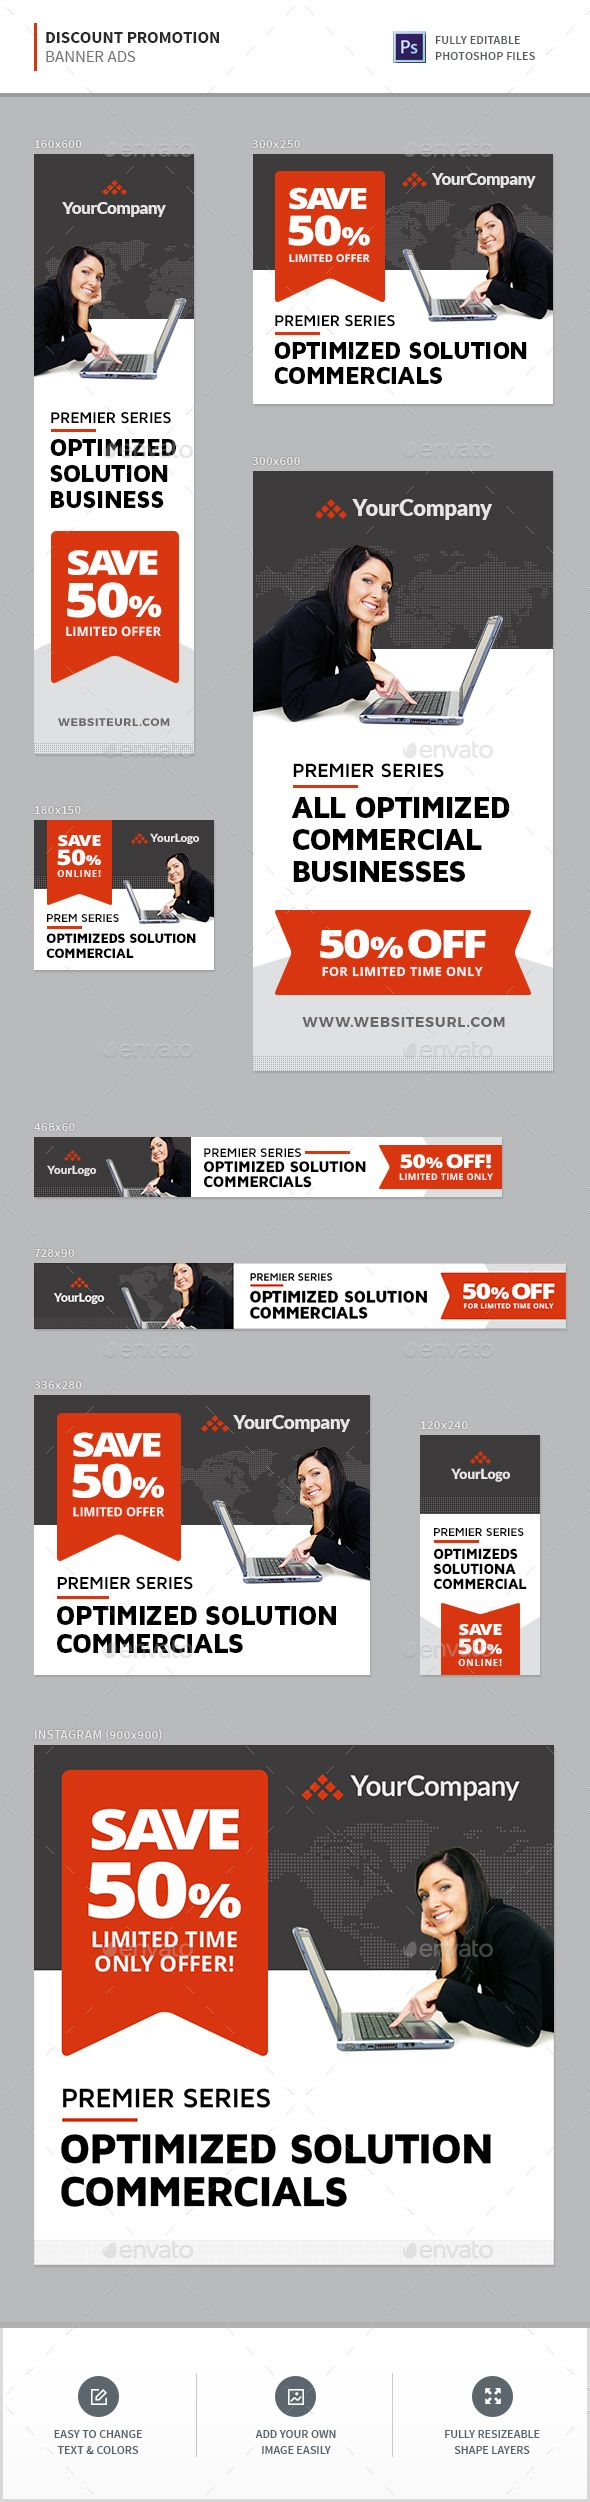 Best Promotional Banners Ideas On Pinterest Social Media - Vinyl business bannersbusiness signs banners promotionshop for promotional business